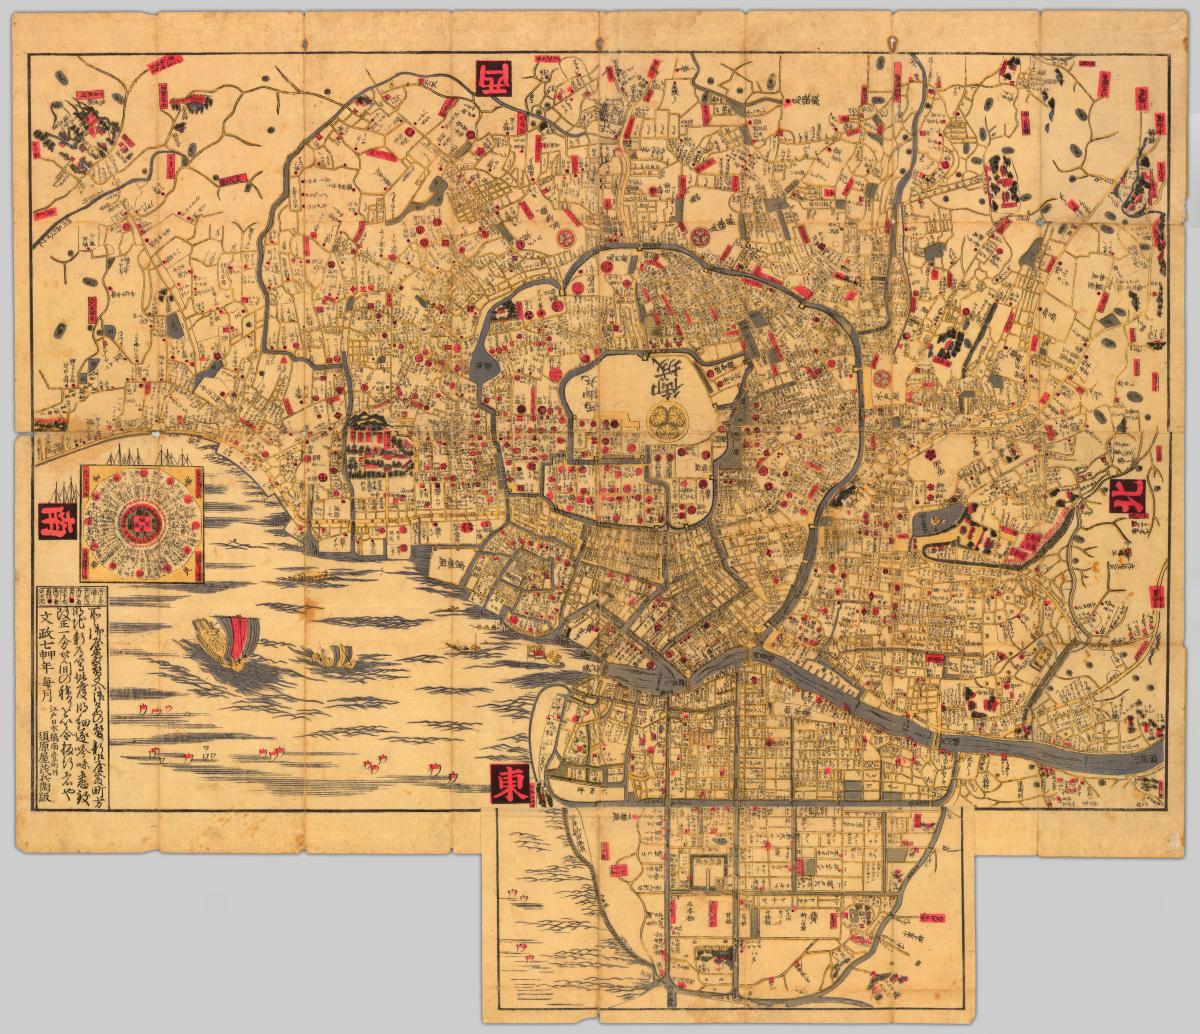 Japan was an impressively urbanized society by the end of the Tokugawa period, as this map of Edo attests, and its complex economic institutions laid the groundwork for a period of startling economic growth.